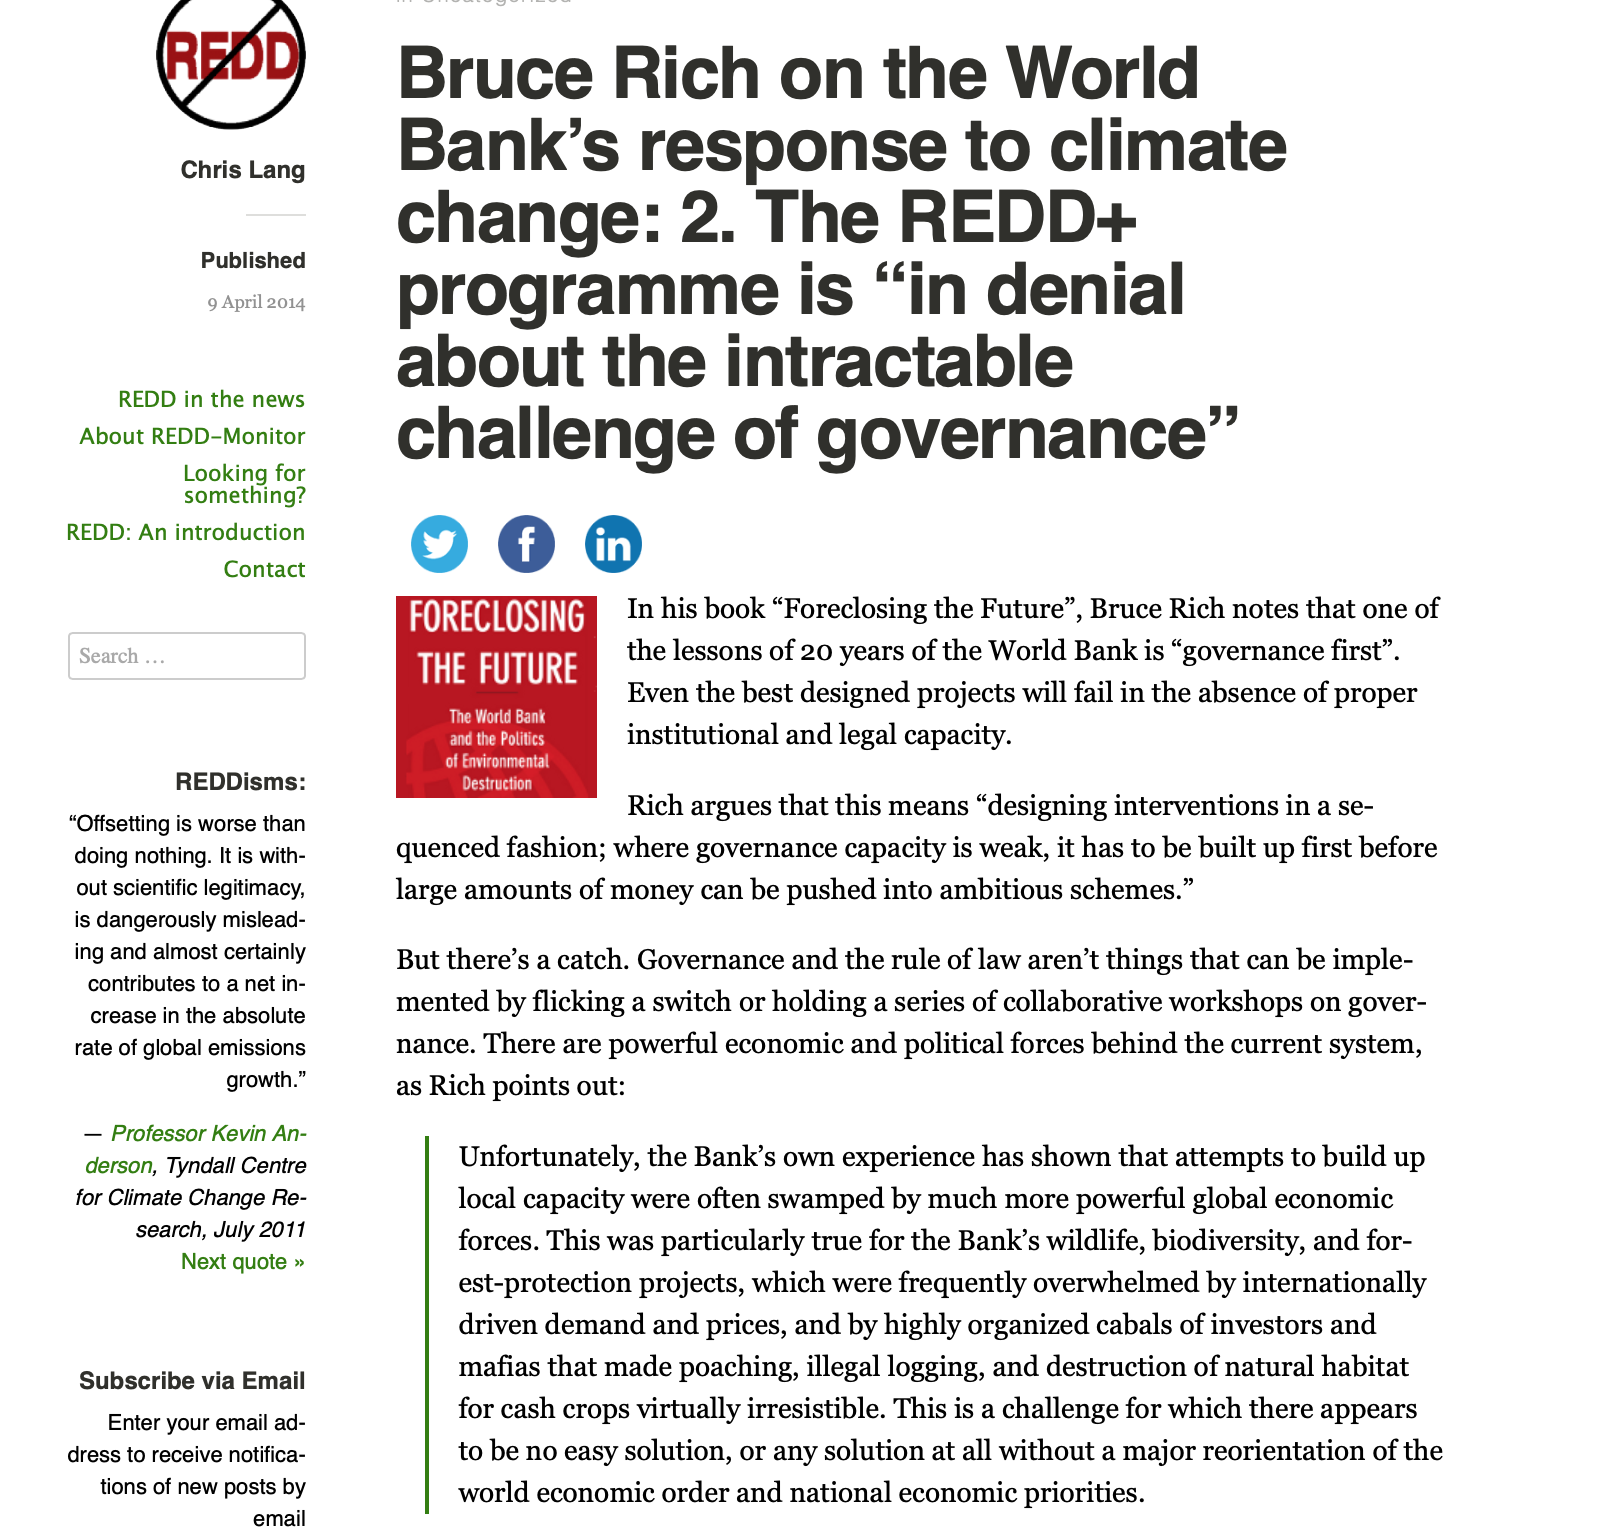 The REDD+ Program is in Denial About the Intractable Problem of Governance